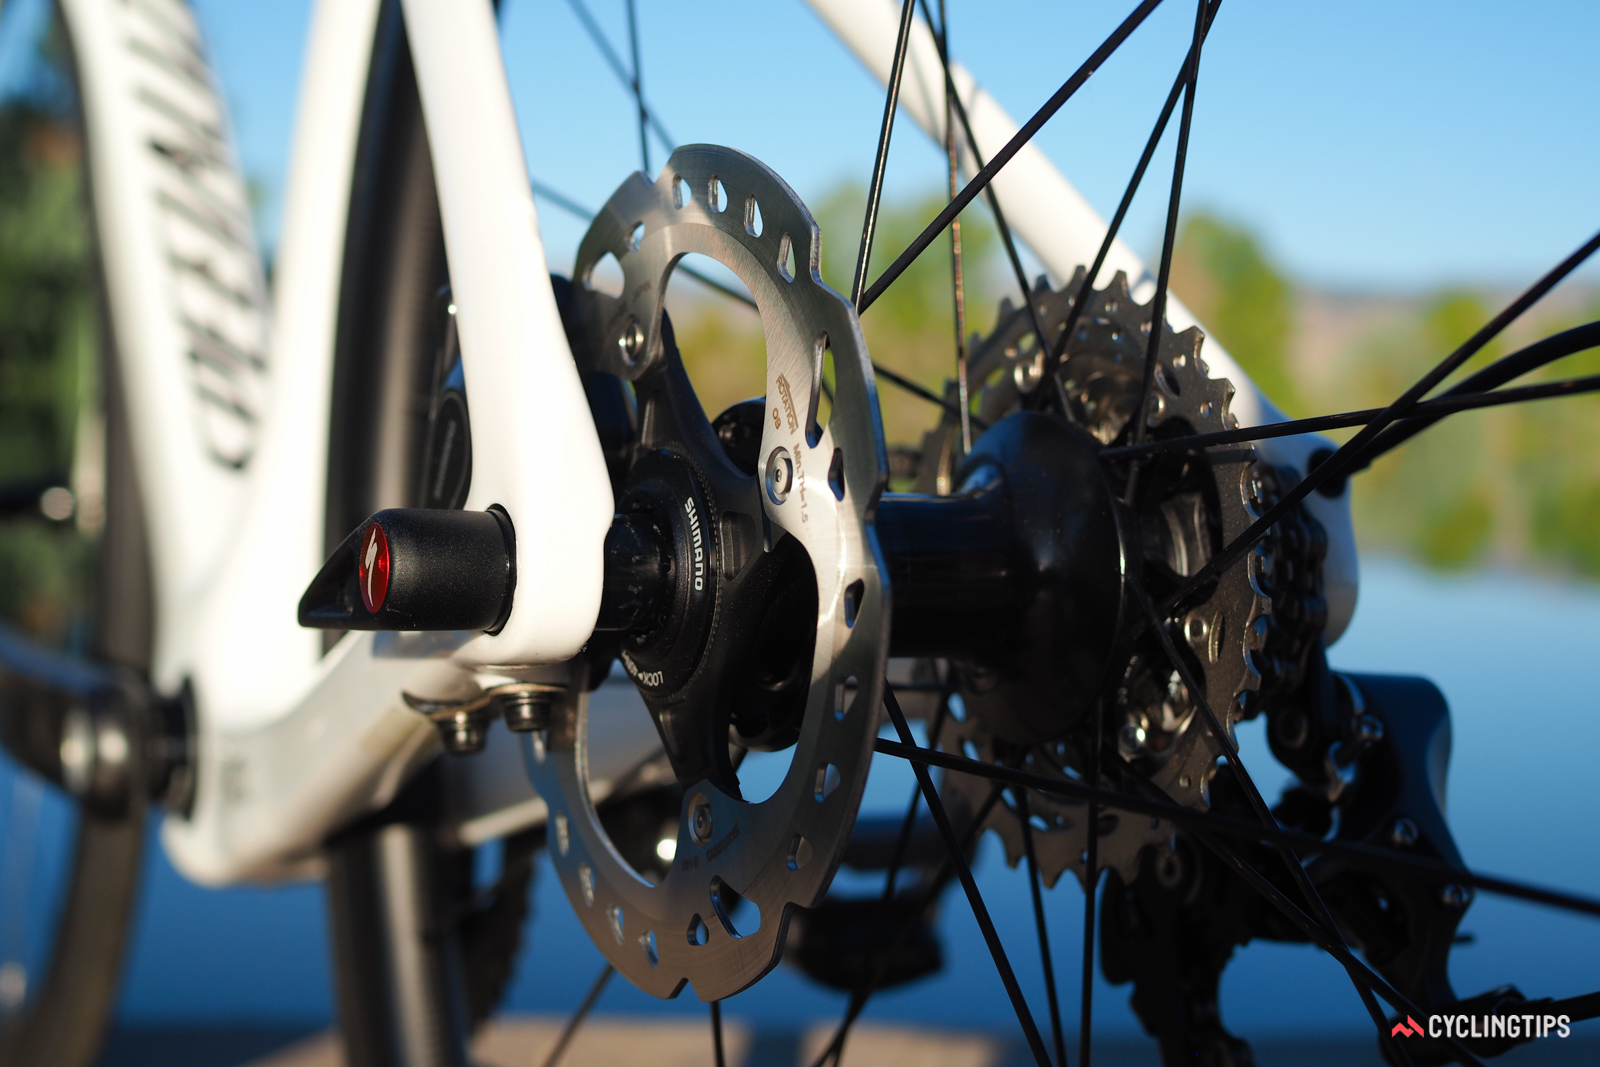 No, the problem supposedly isn't the caliper; it's the rotor and rotor interface that are more aerodynamically challenging.